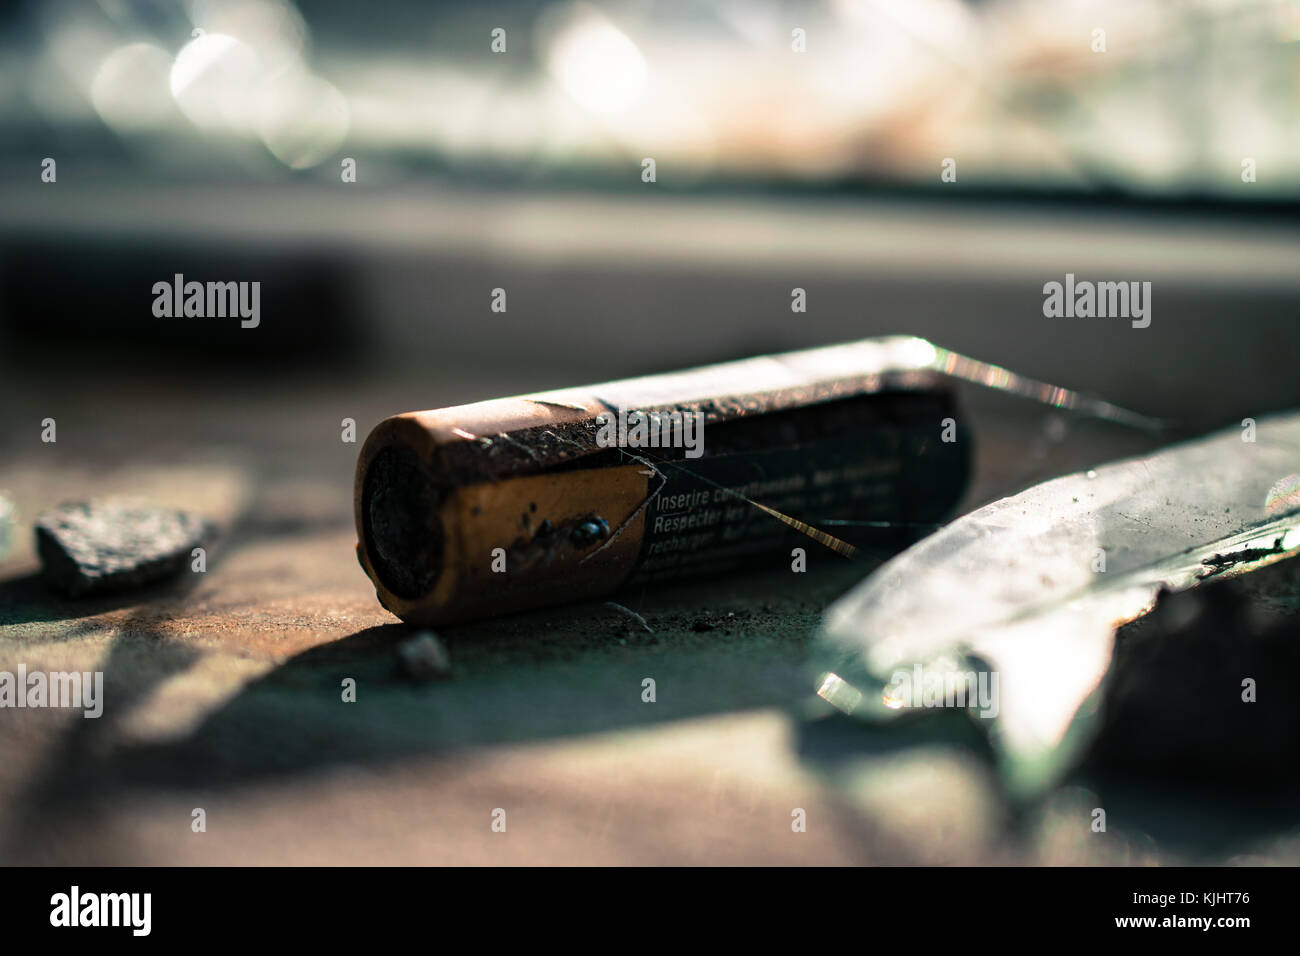 Abandoned battery on a windowsill. Battery rusted and corroded. - Stock Image